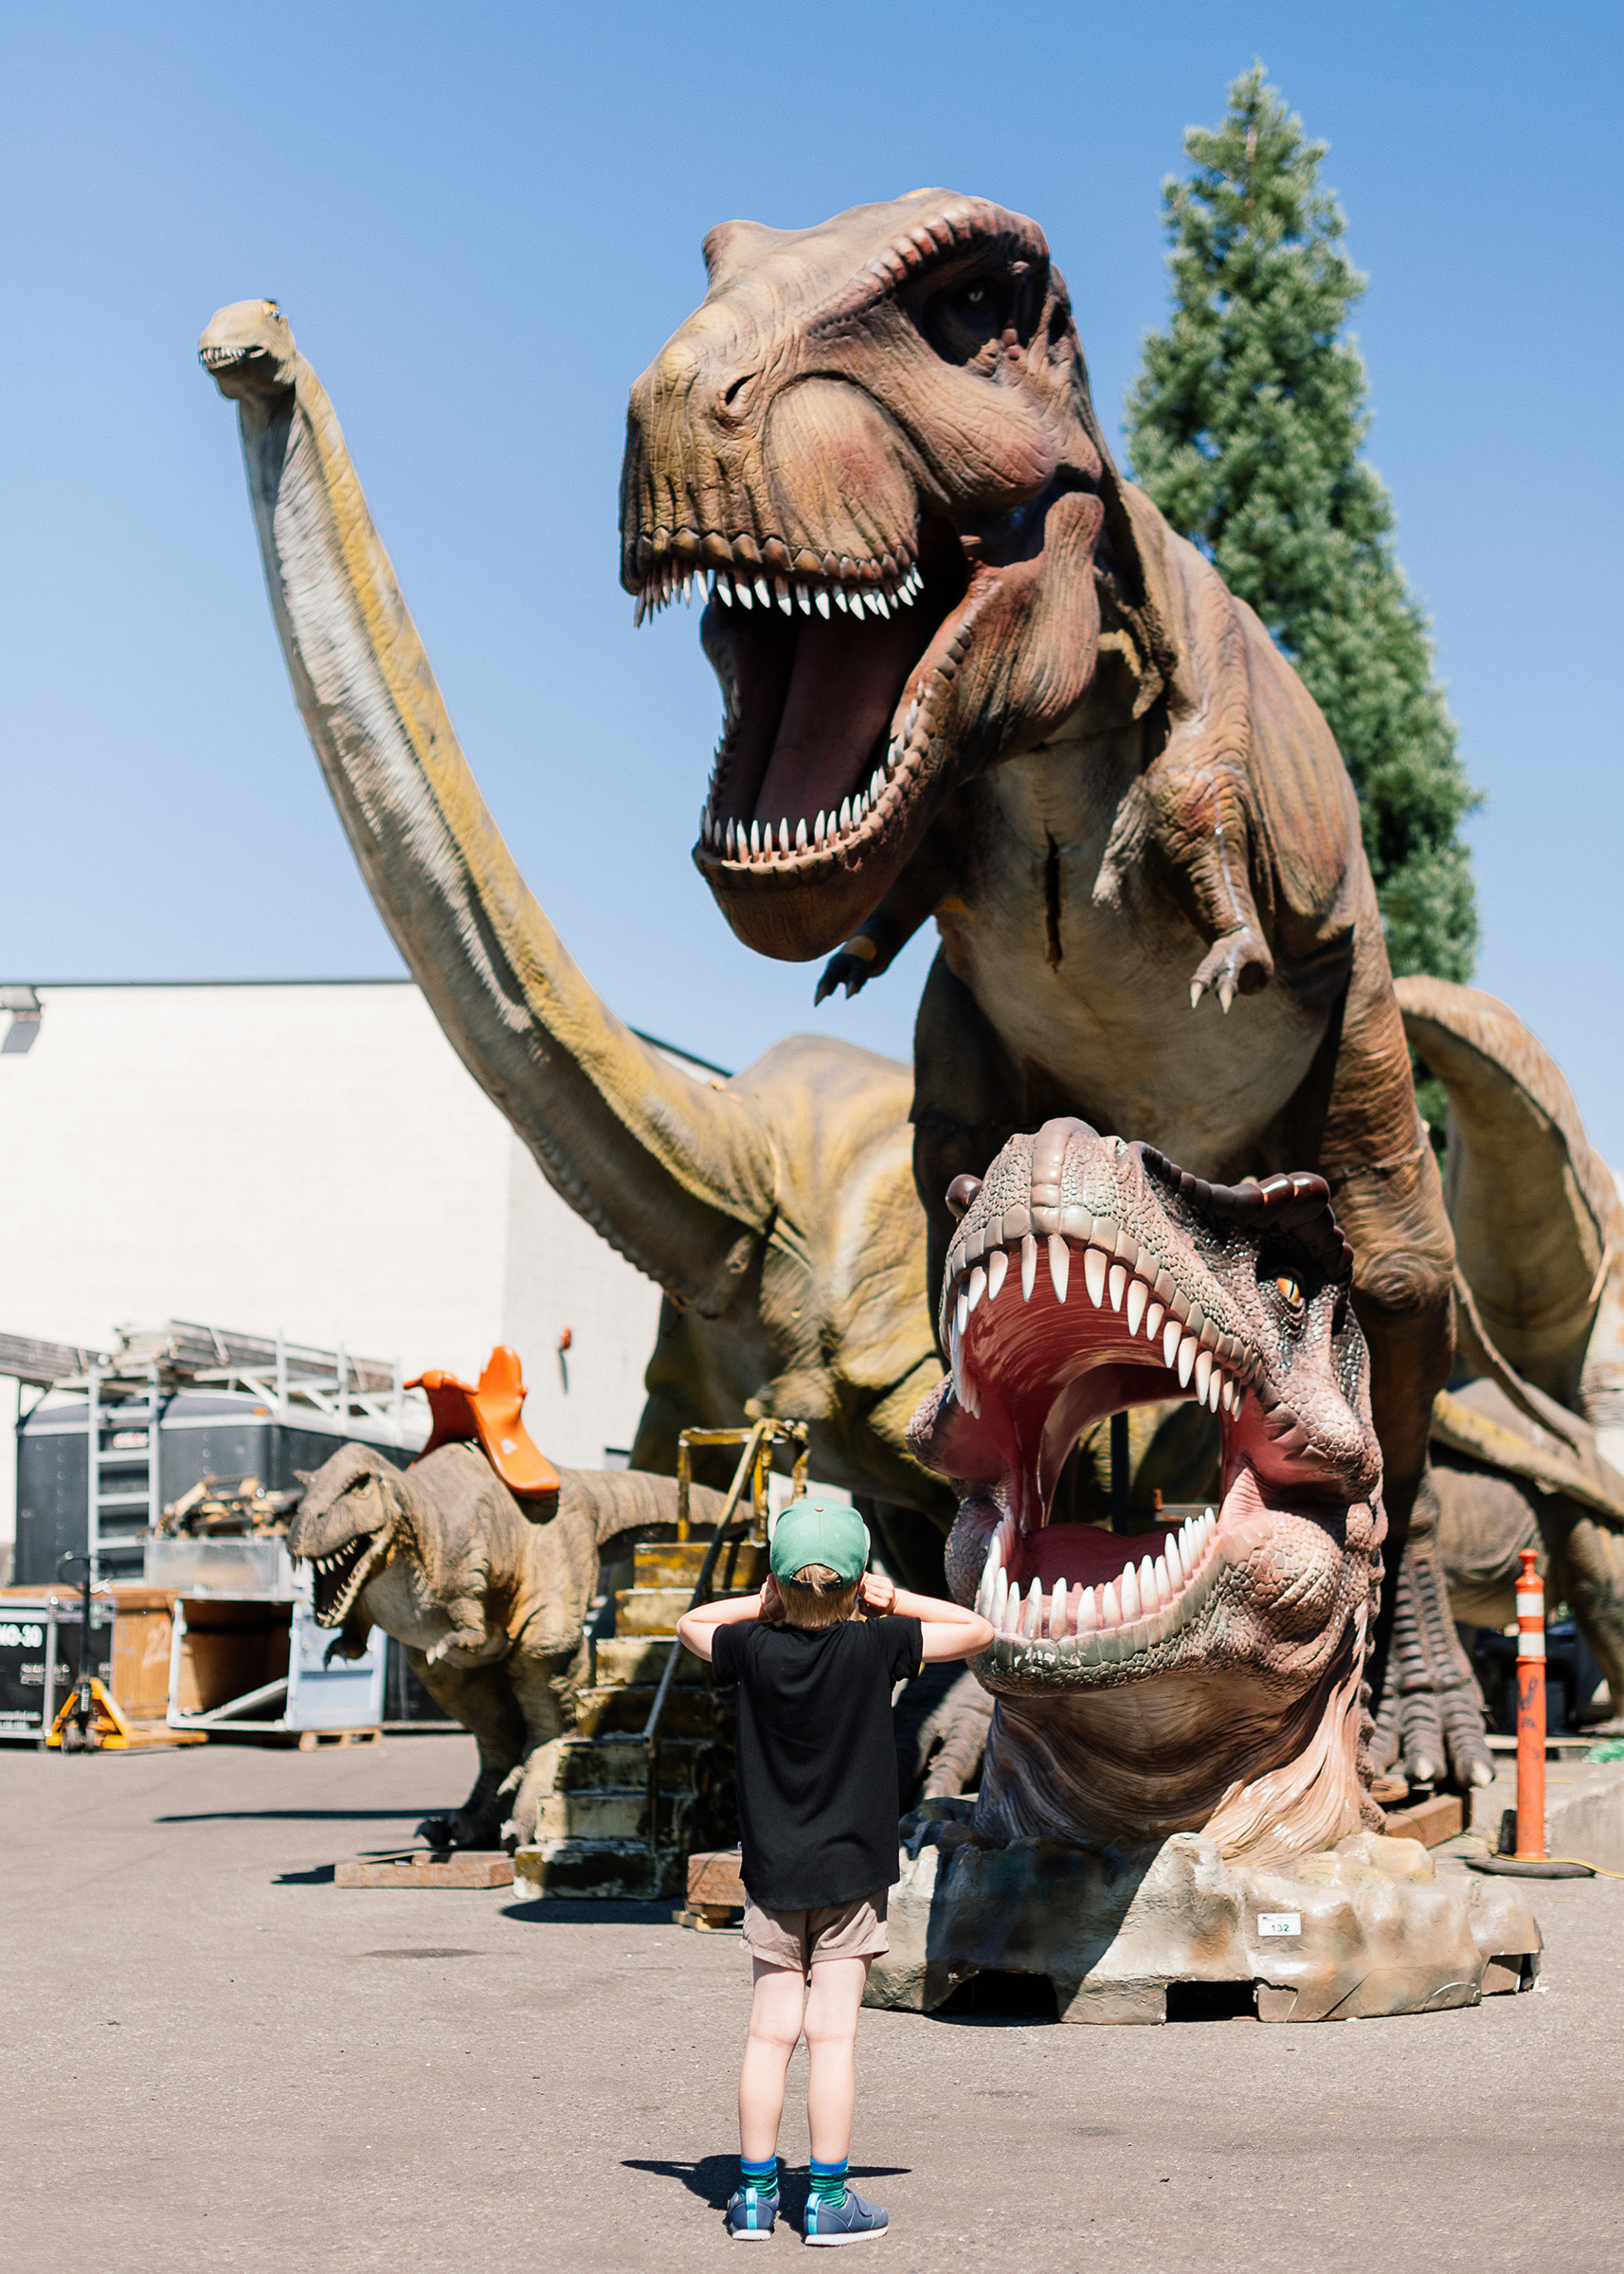 Animatronic dinosaurs on auction at Able Auction house in Langley, BC. (Photograph by Alana Paterson)